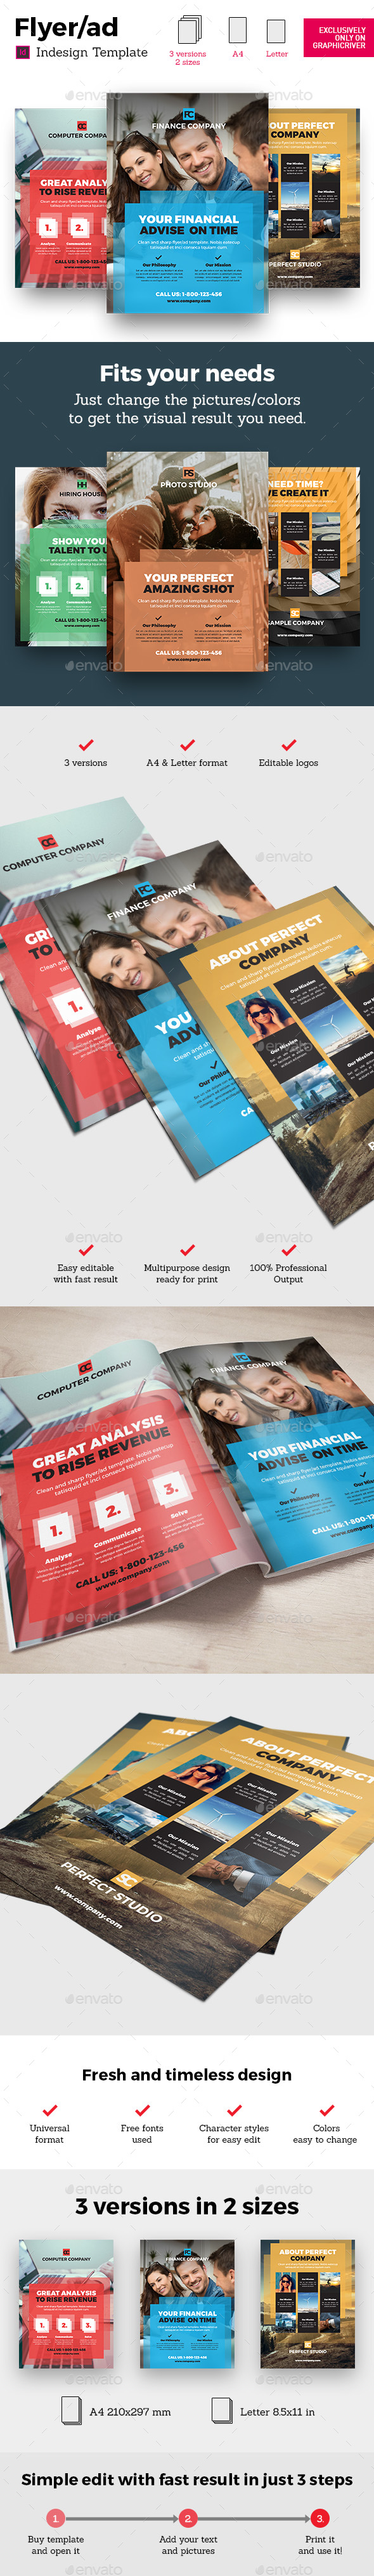 Corporate Business Universal Flyer/ad 3x Template Square White Indesign